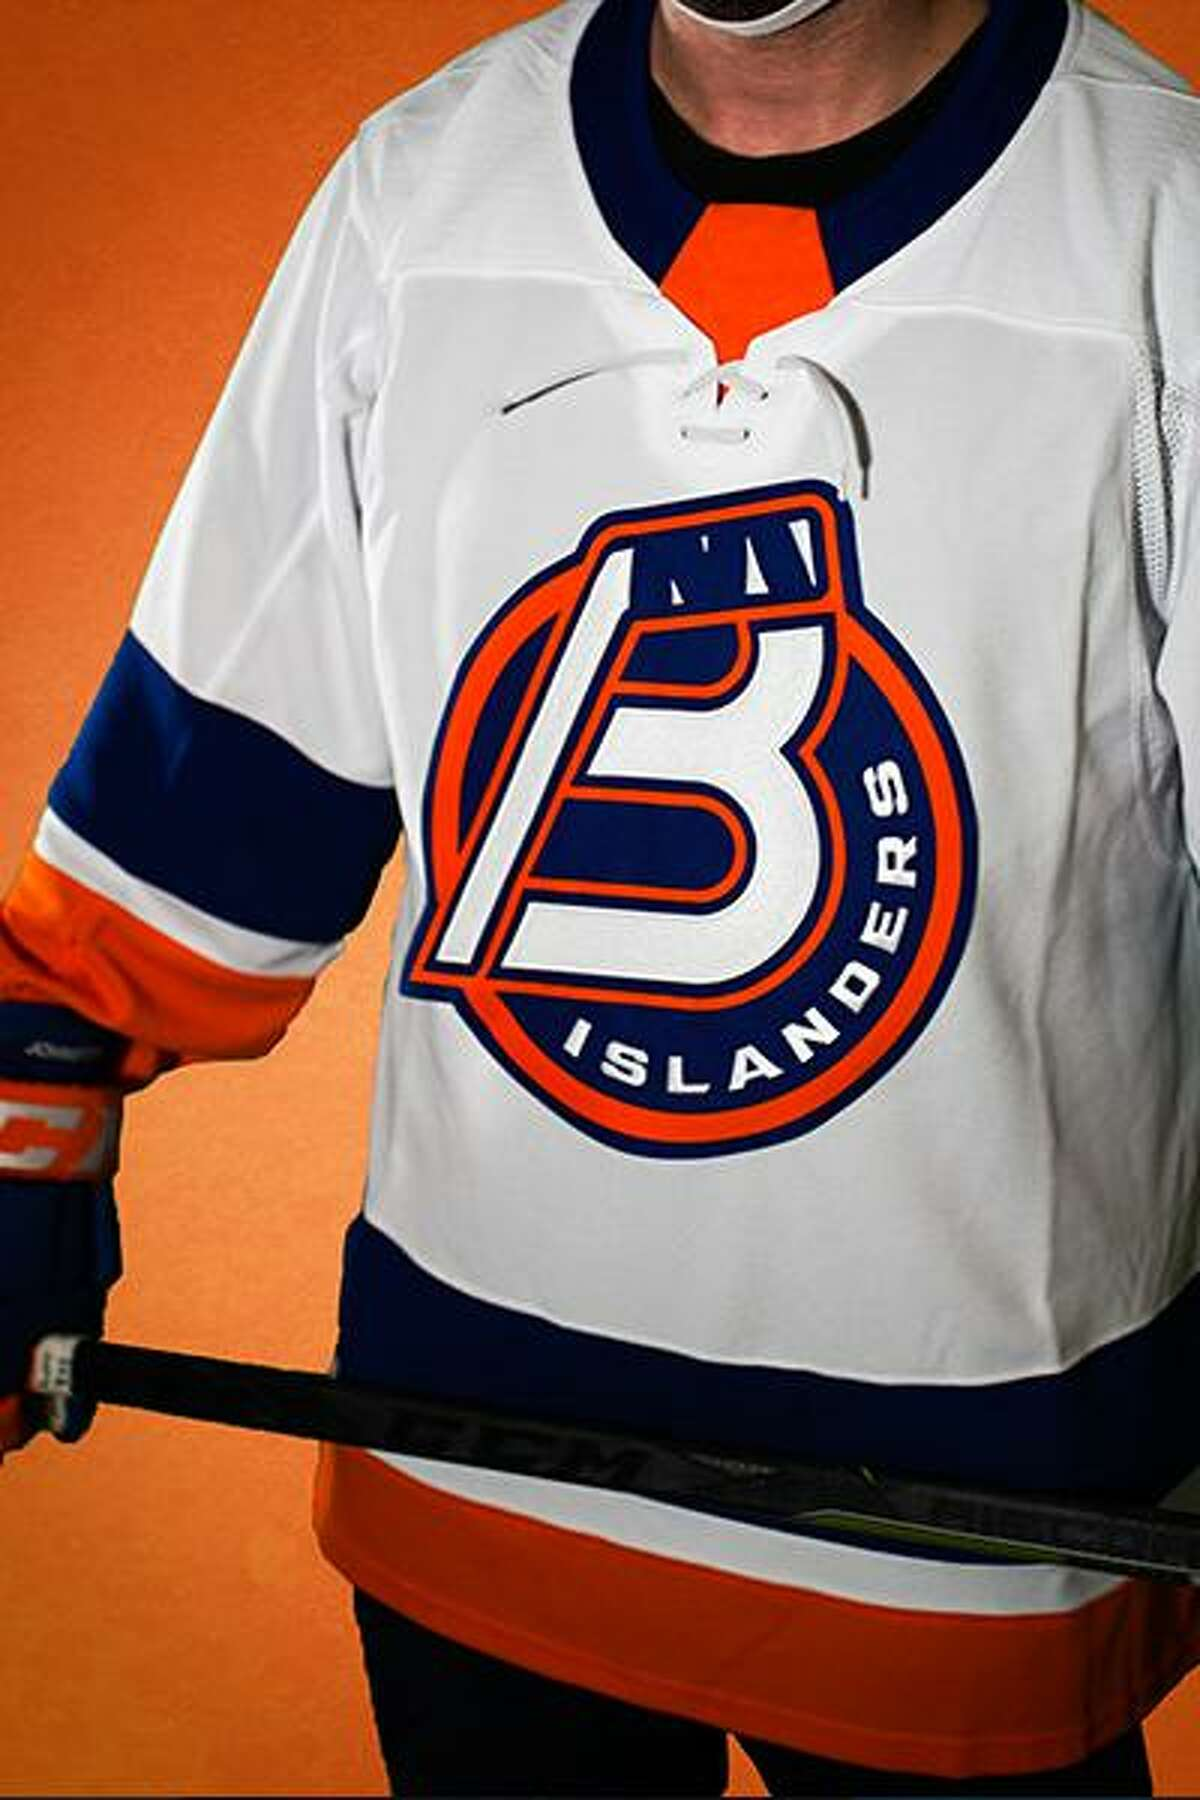 Bridgeport's AHL franchise is rebranding from the Sound Tigers to the Bridgeport Islanders the team announced on Monday.